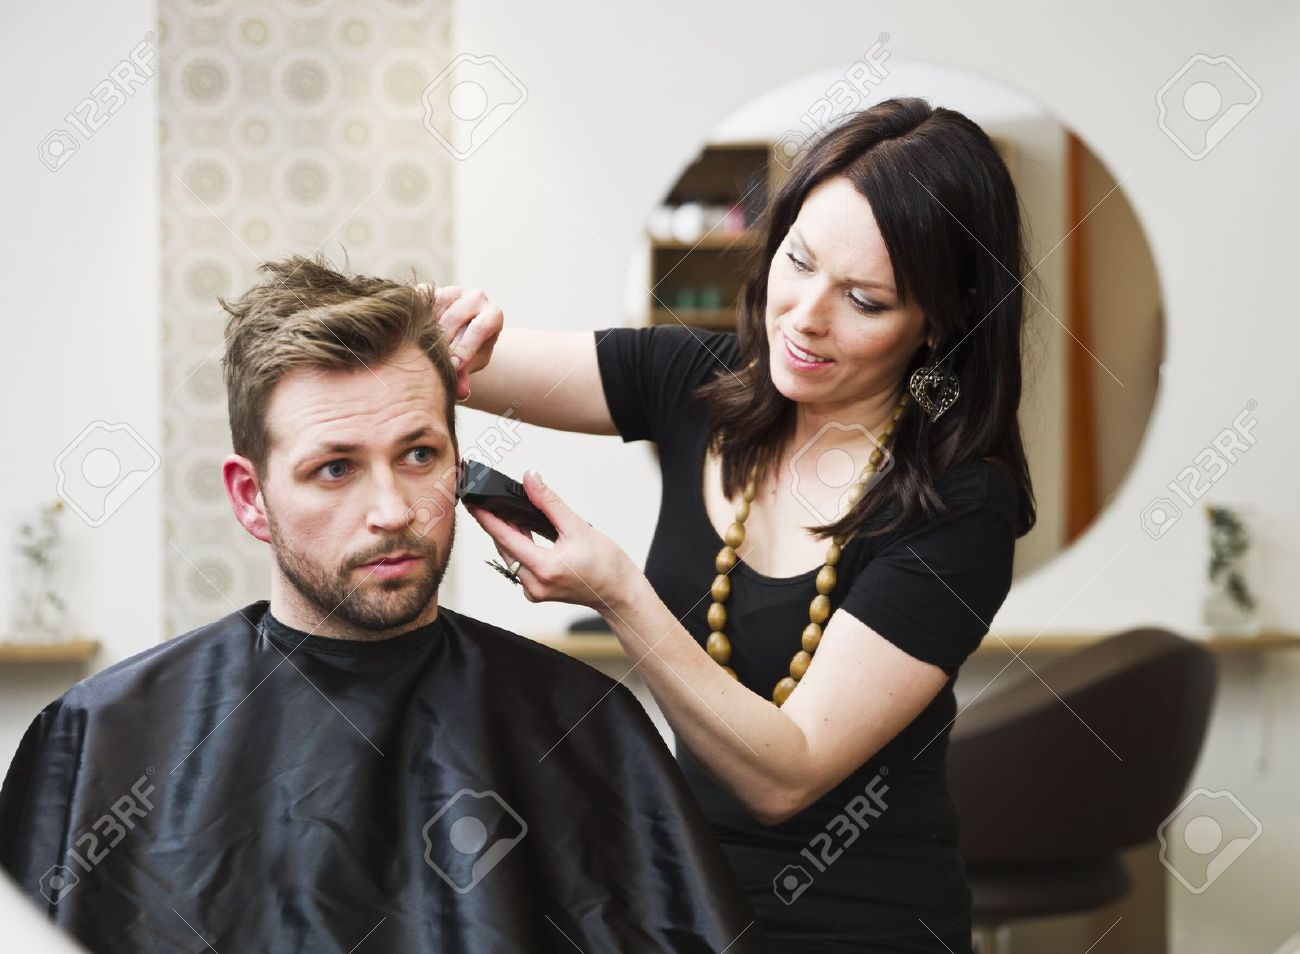 Man at the Hair salon situation Stock Photo - 9287613